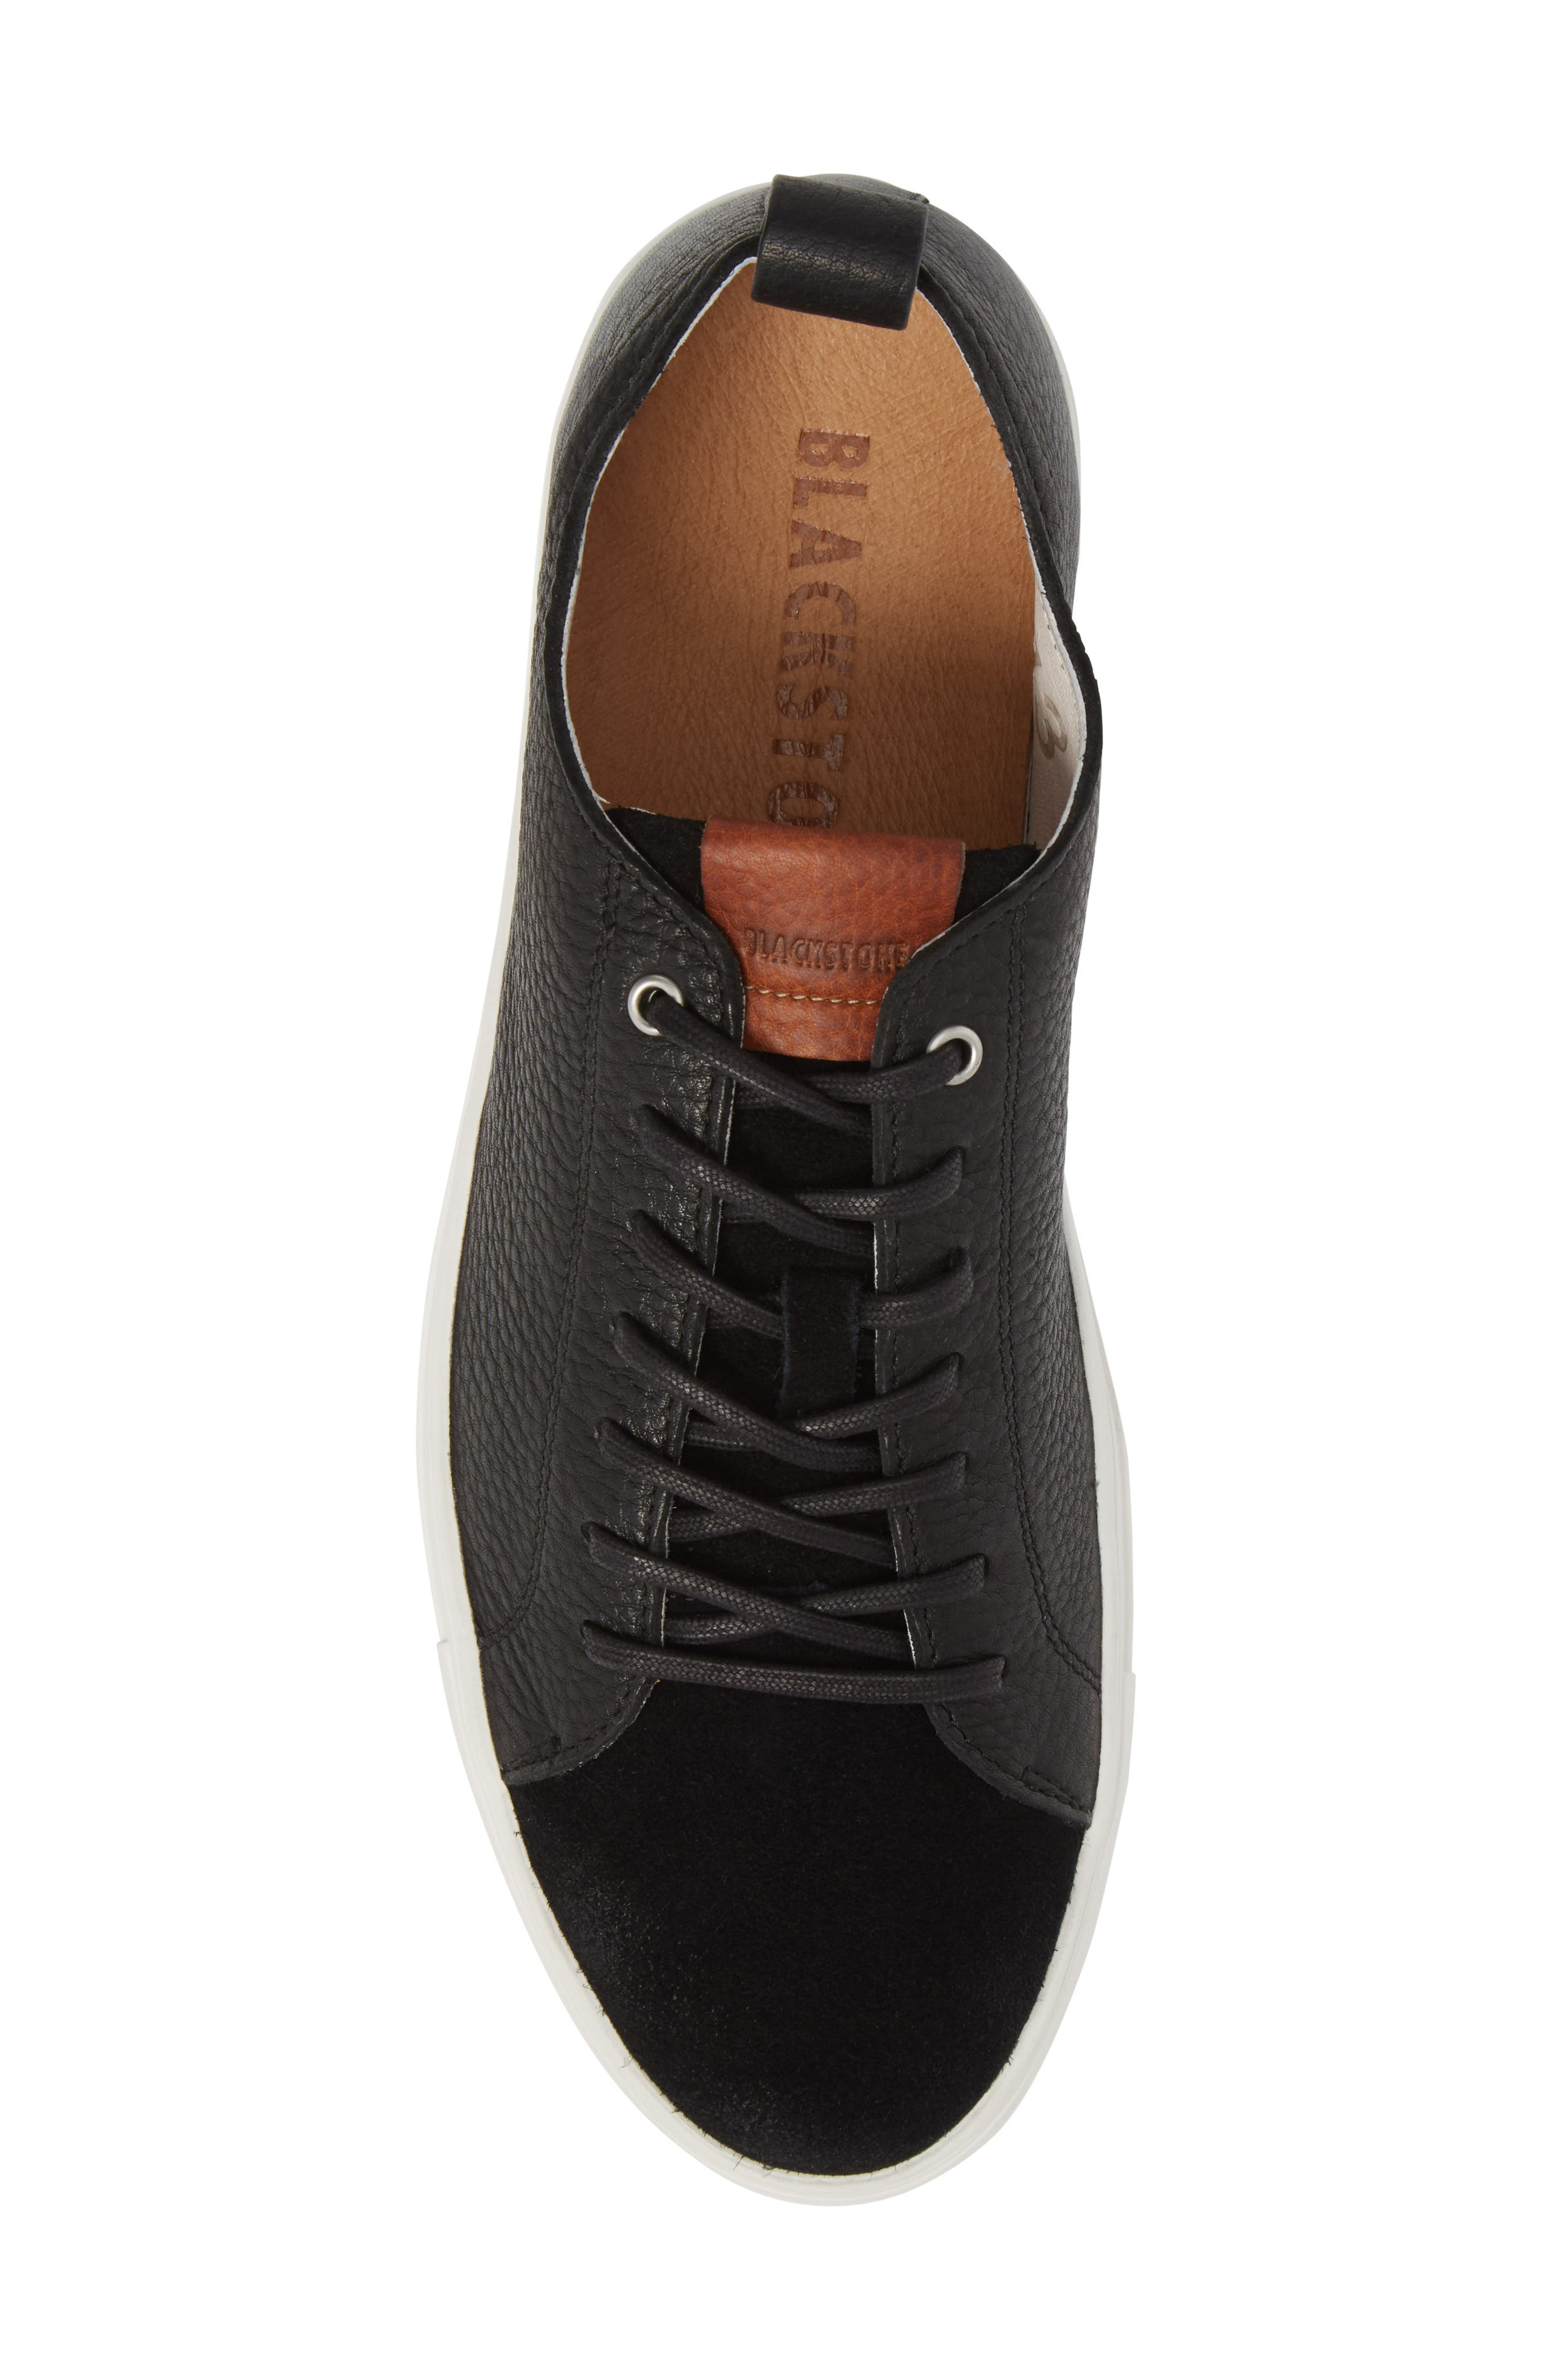 PM46 Low Top Sneaker,                             Alternate thumbnail 5, color,                             BLACK LEATHER